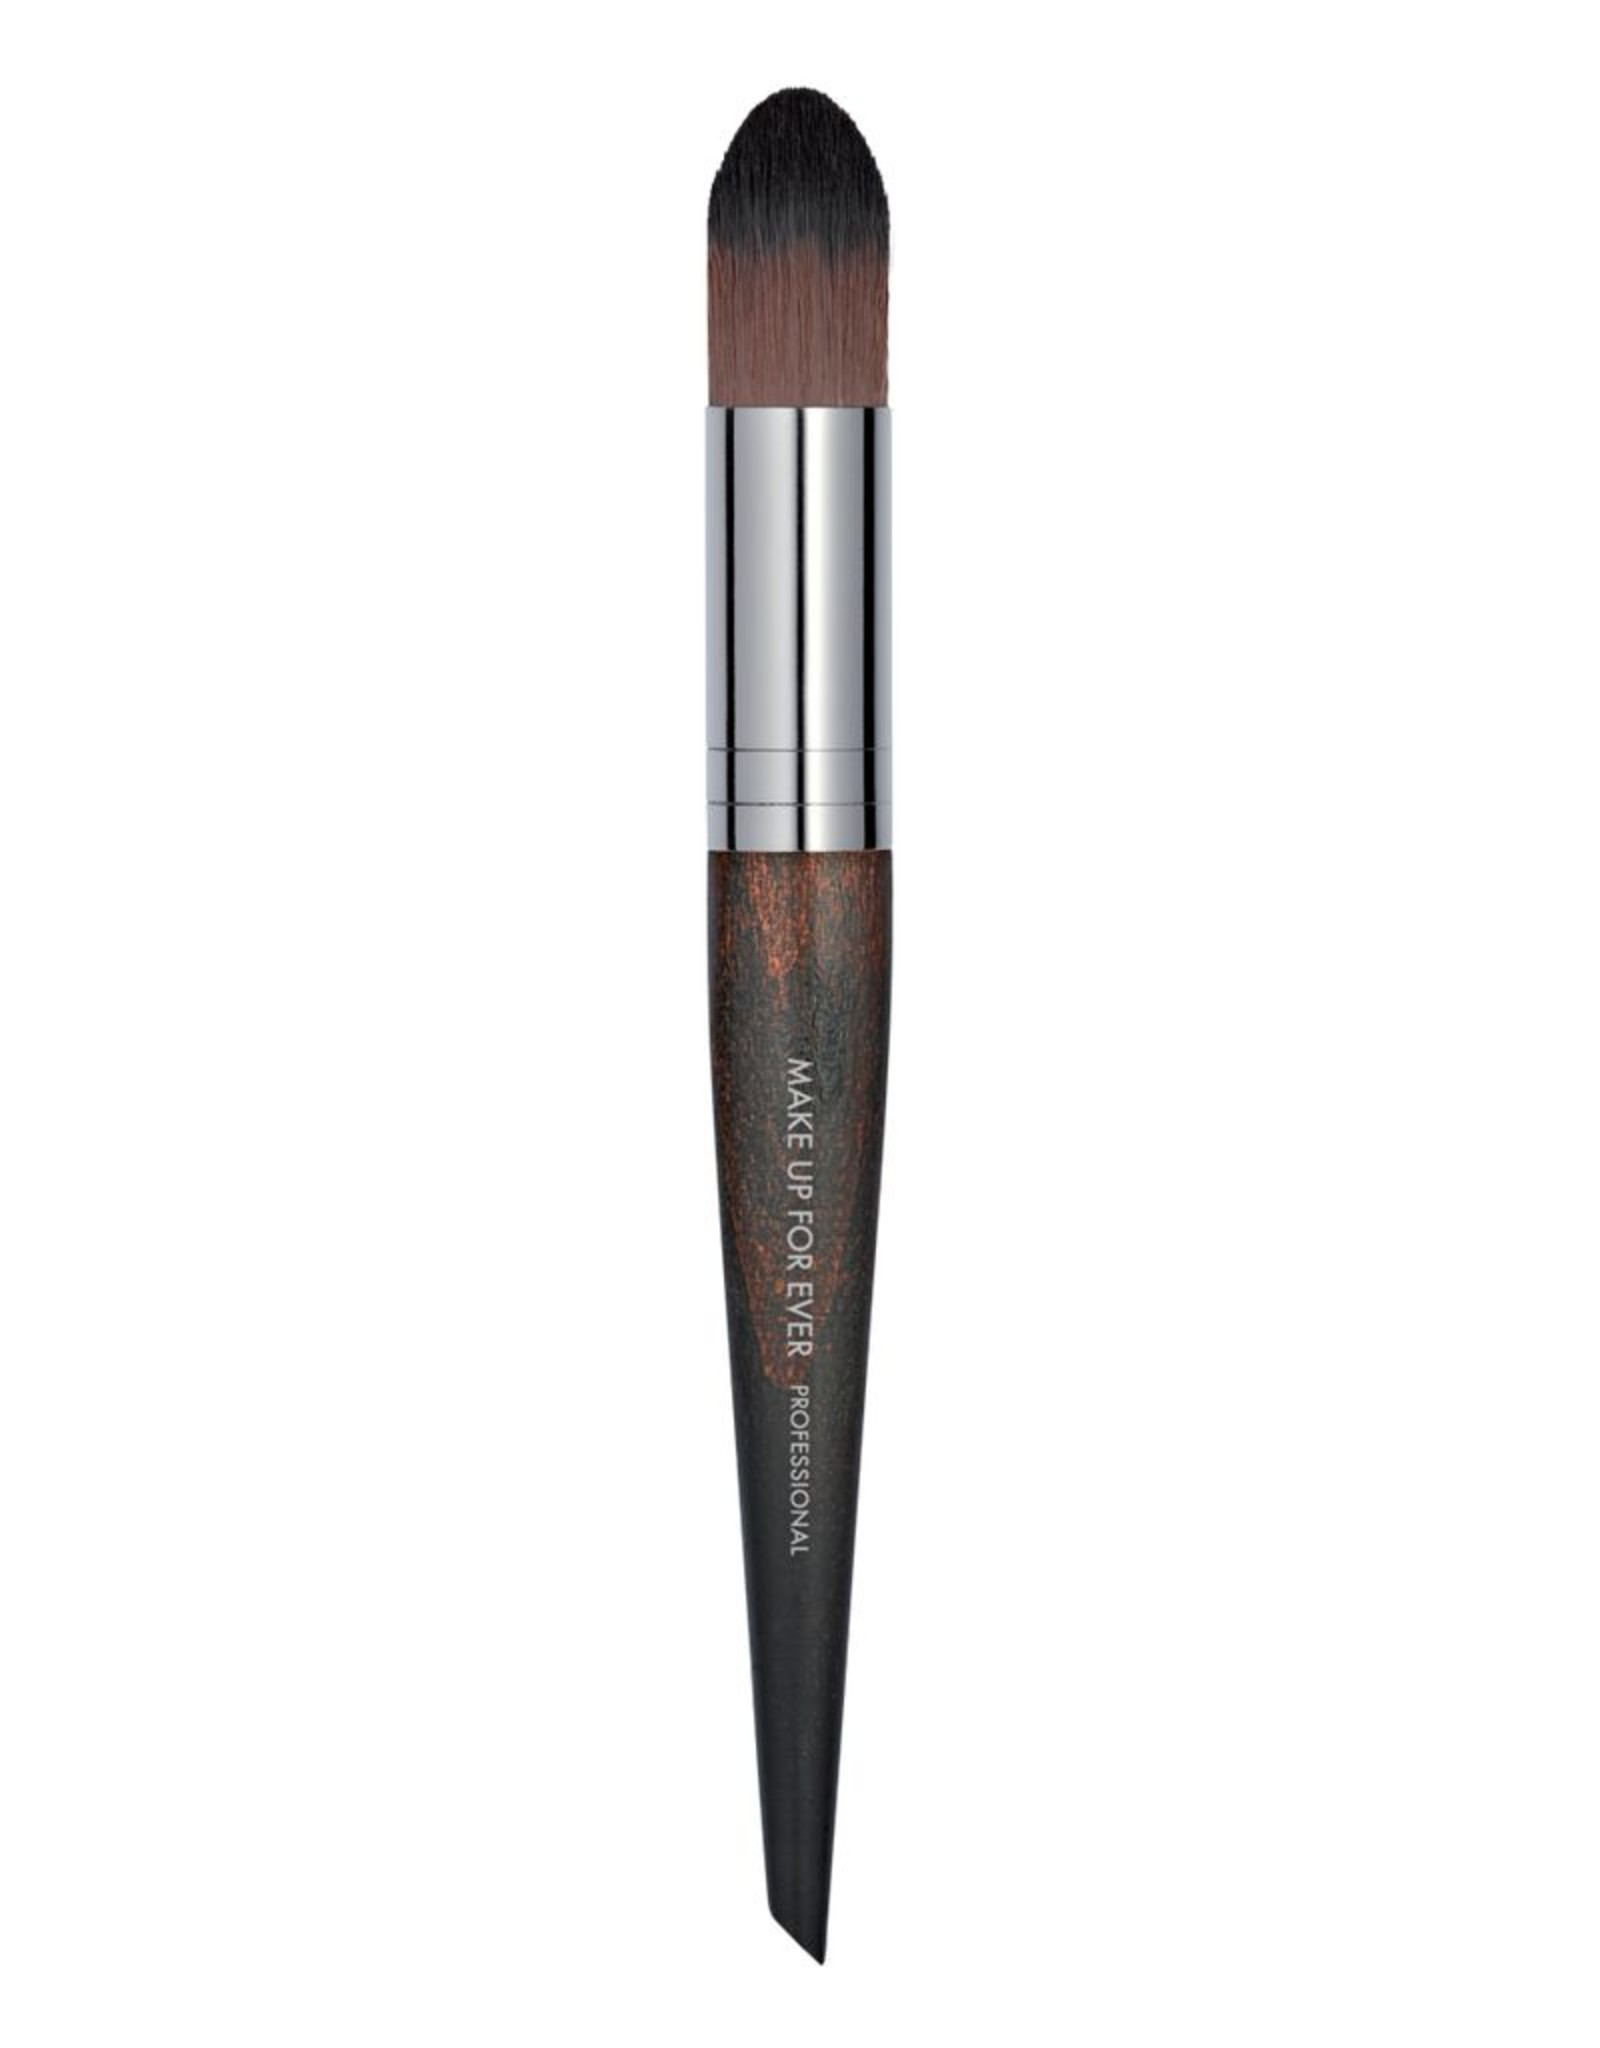 MUFE #100 PINC. FDT PRECISION - PETIT / PRECISION FOUND BRUSH - SMALL